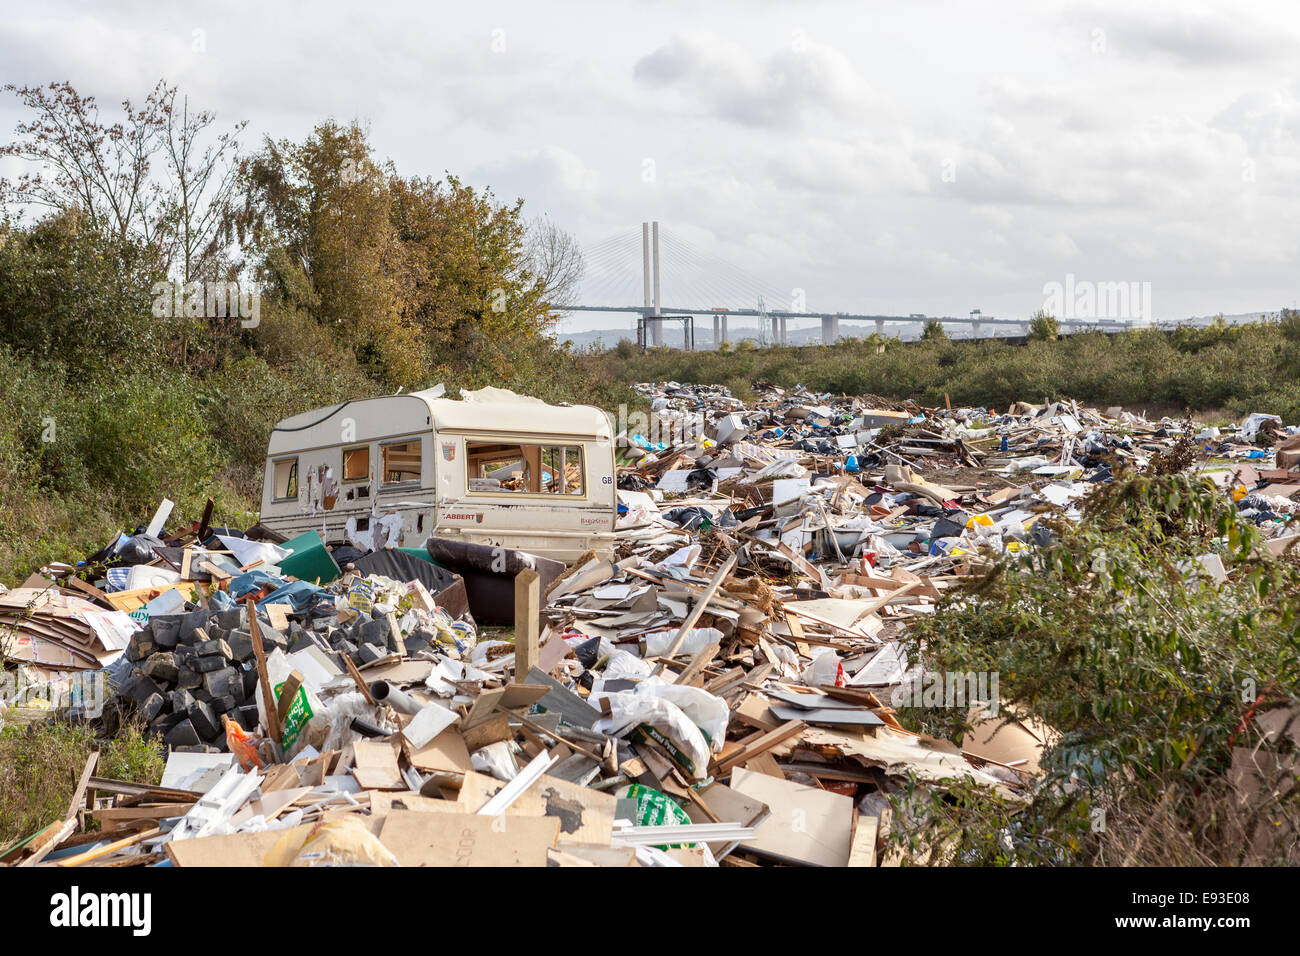 Recently demolished traveller's site in the London Borough of Havering - Stock Image